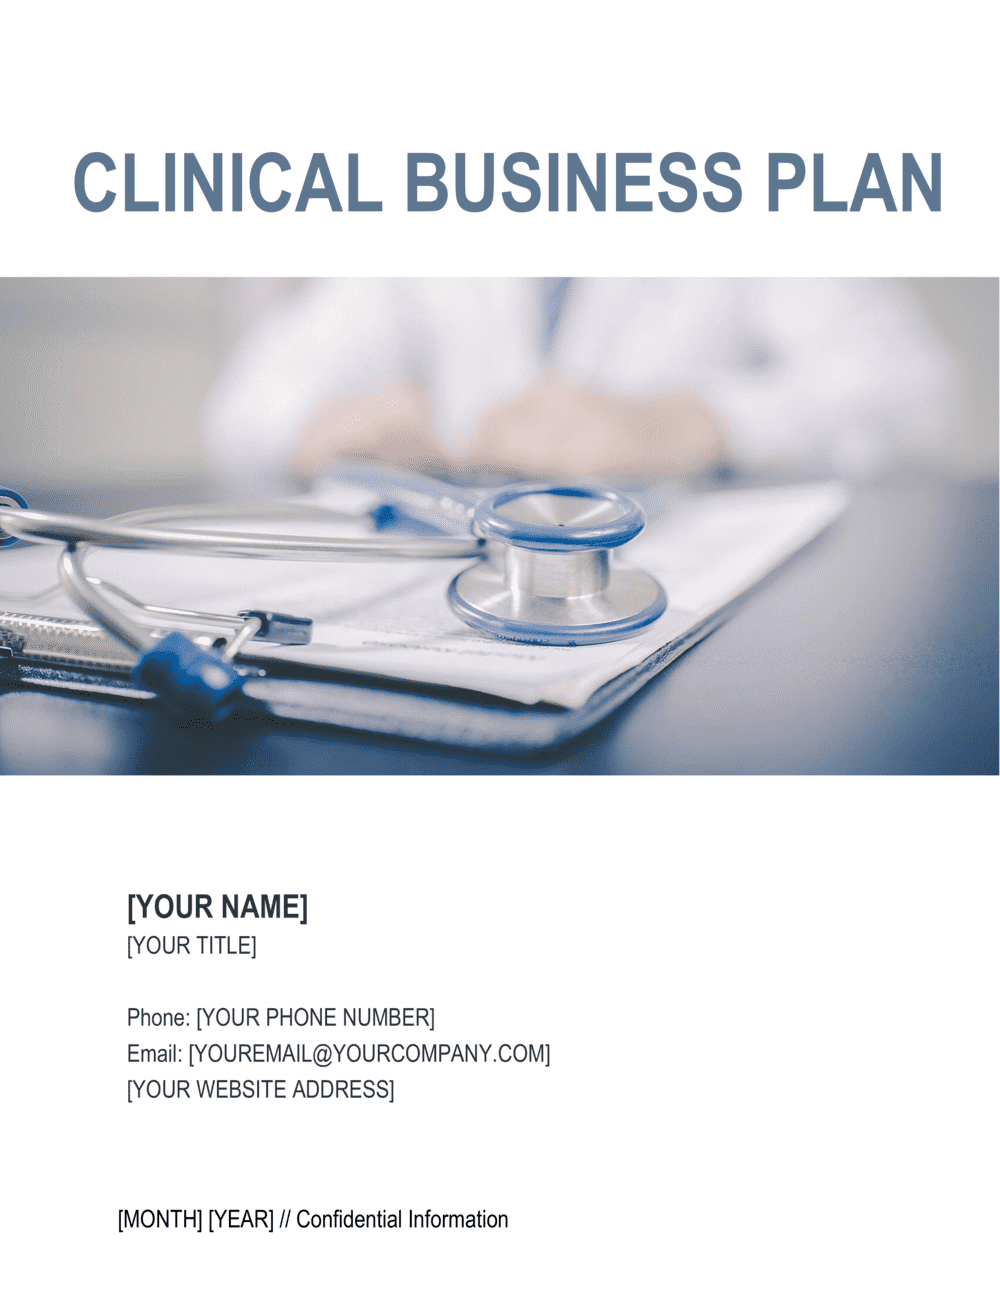 Business-in-a-Box's Clinic Business Plan Template